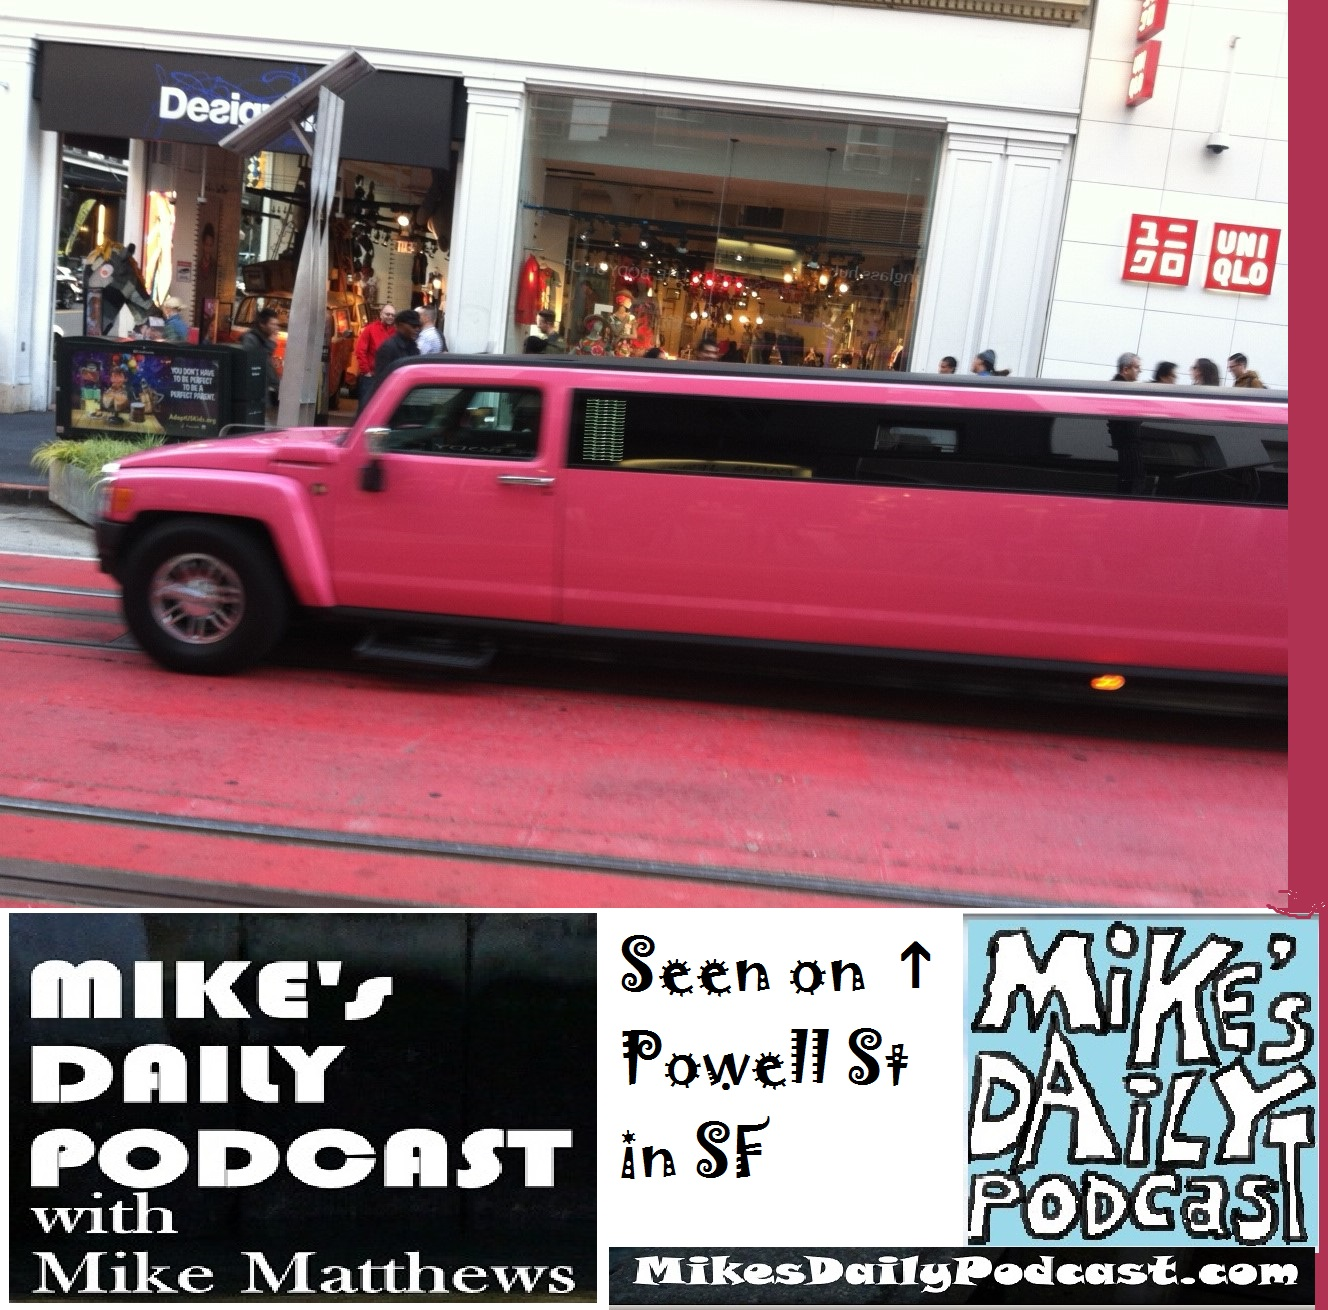 MIKEs DAILY PODCAST 1098 pink hummer limo